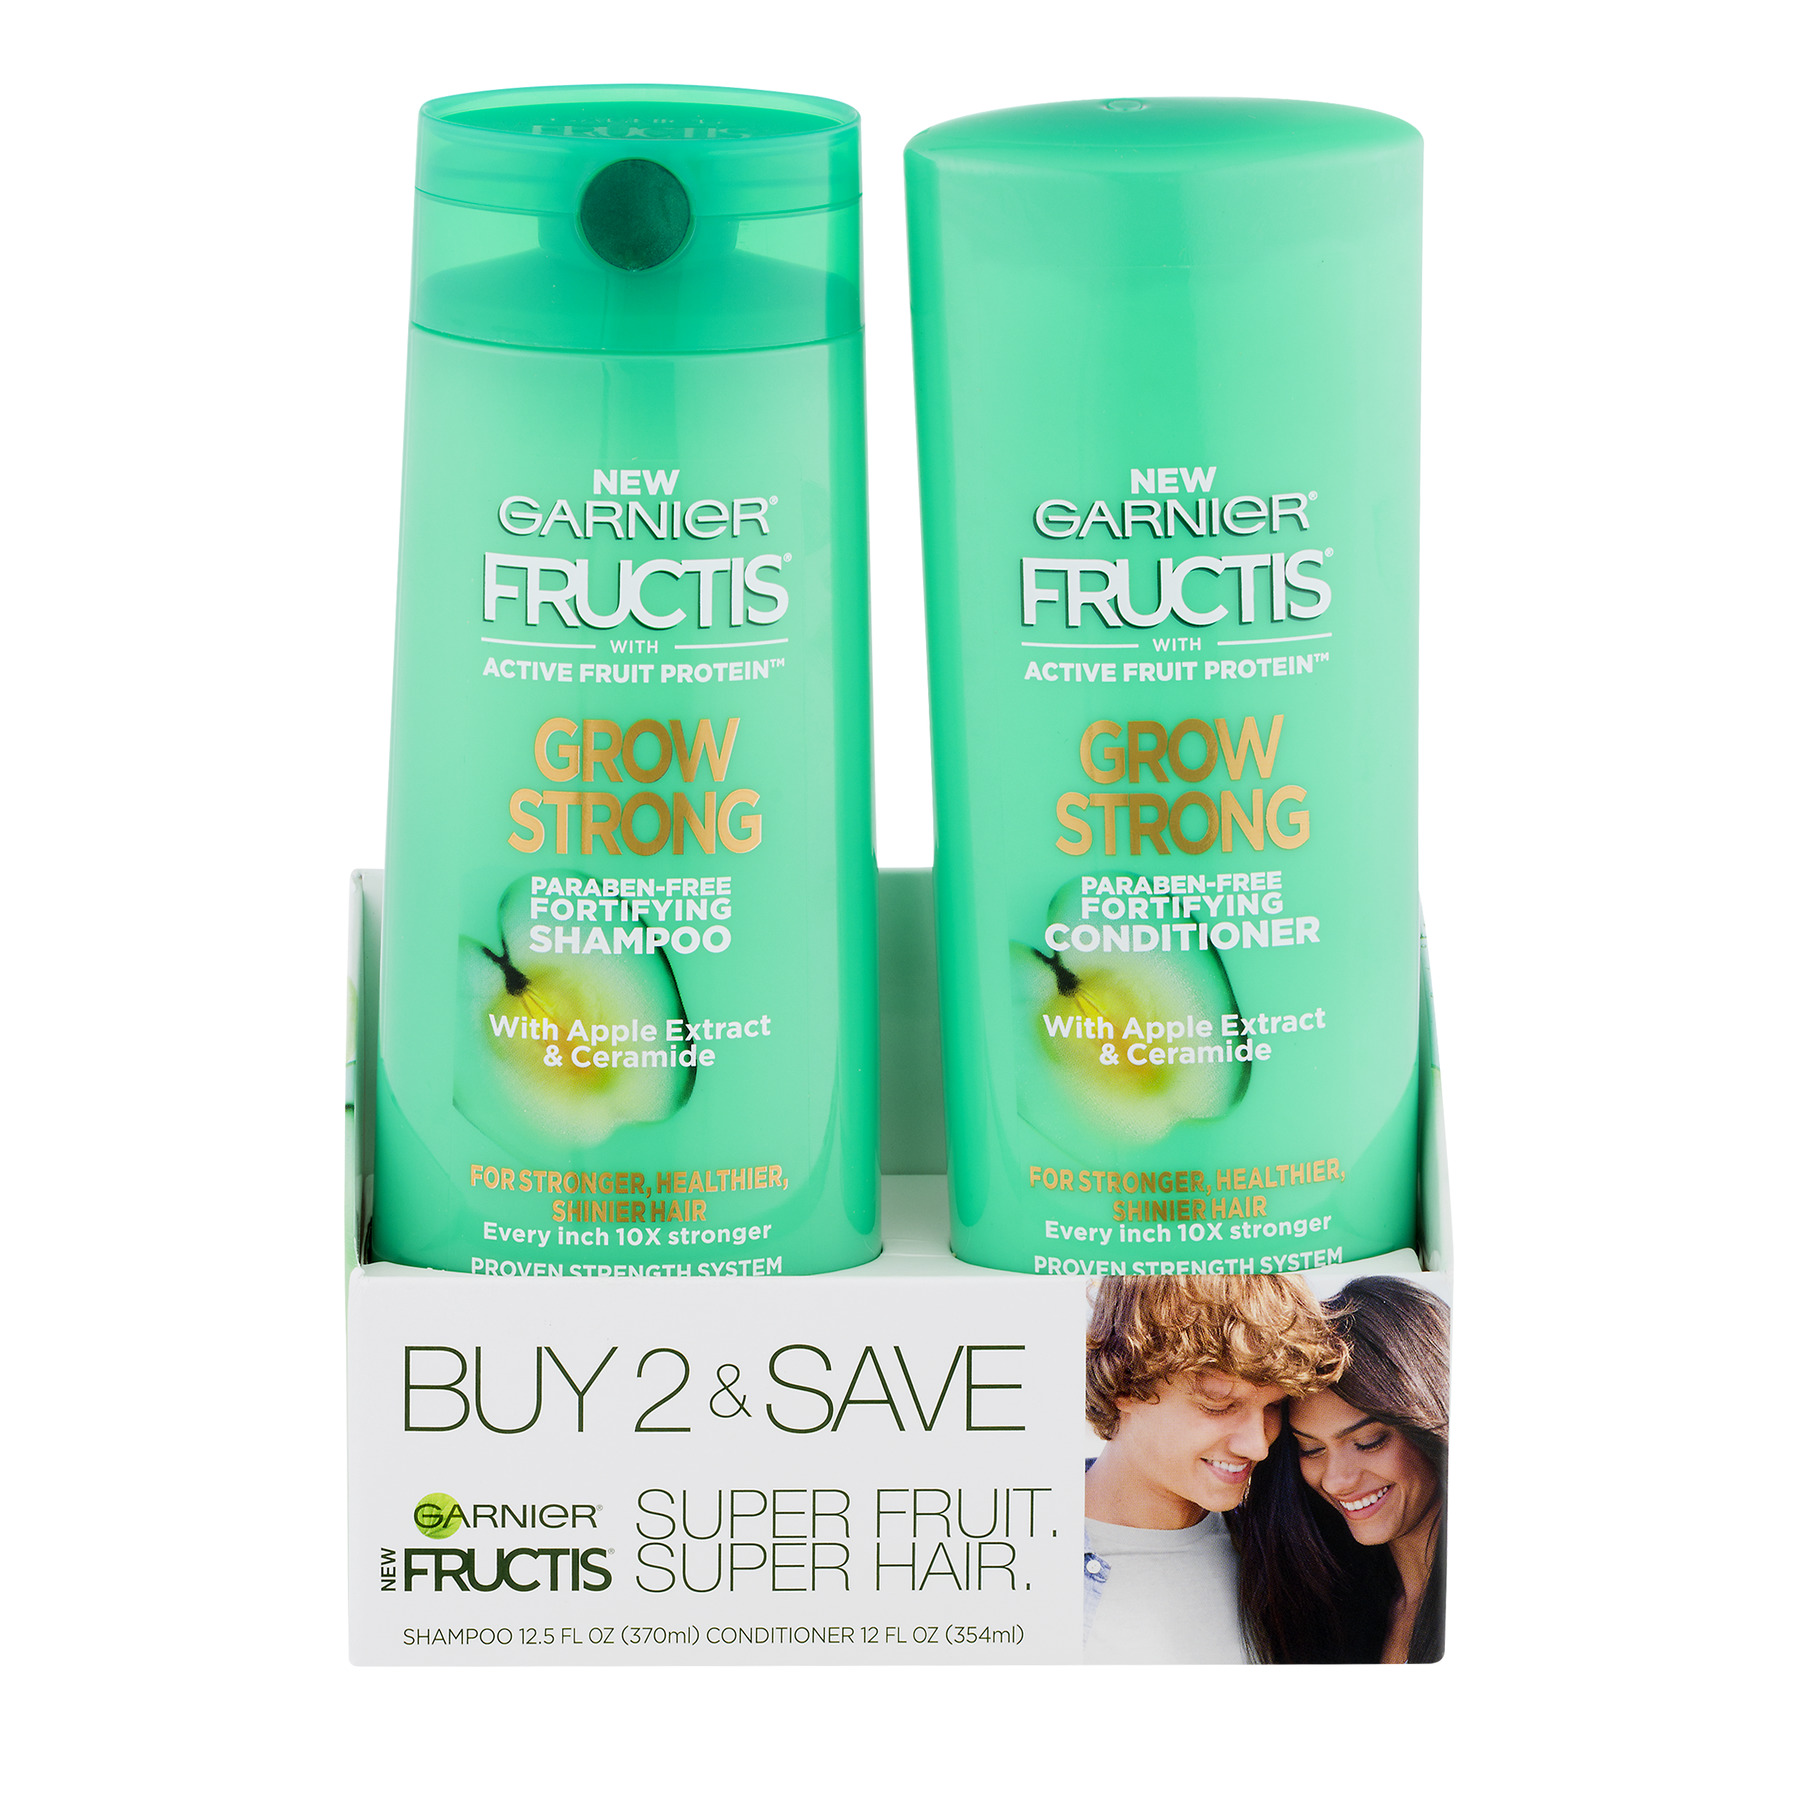 Garnier Fructis Grow Strong Shampoo and Conditioner with Apple Extract & Ceramide, 24.5 FL OZ